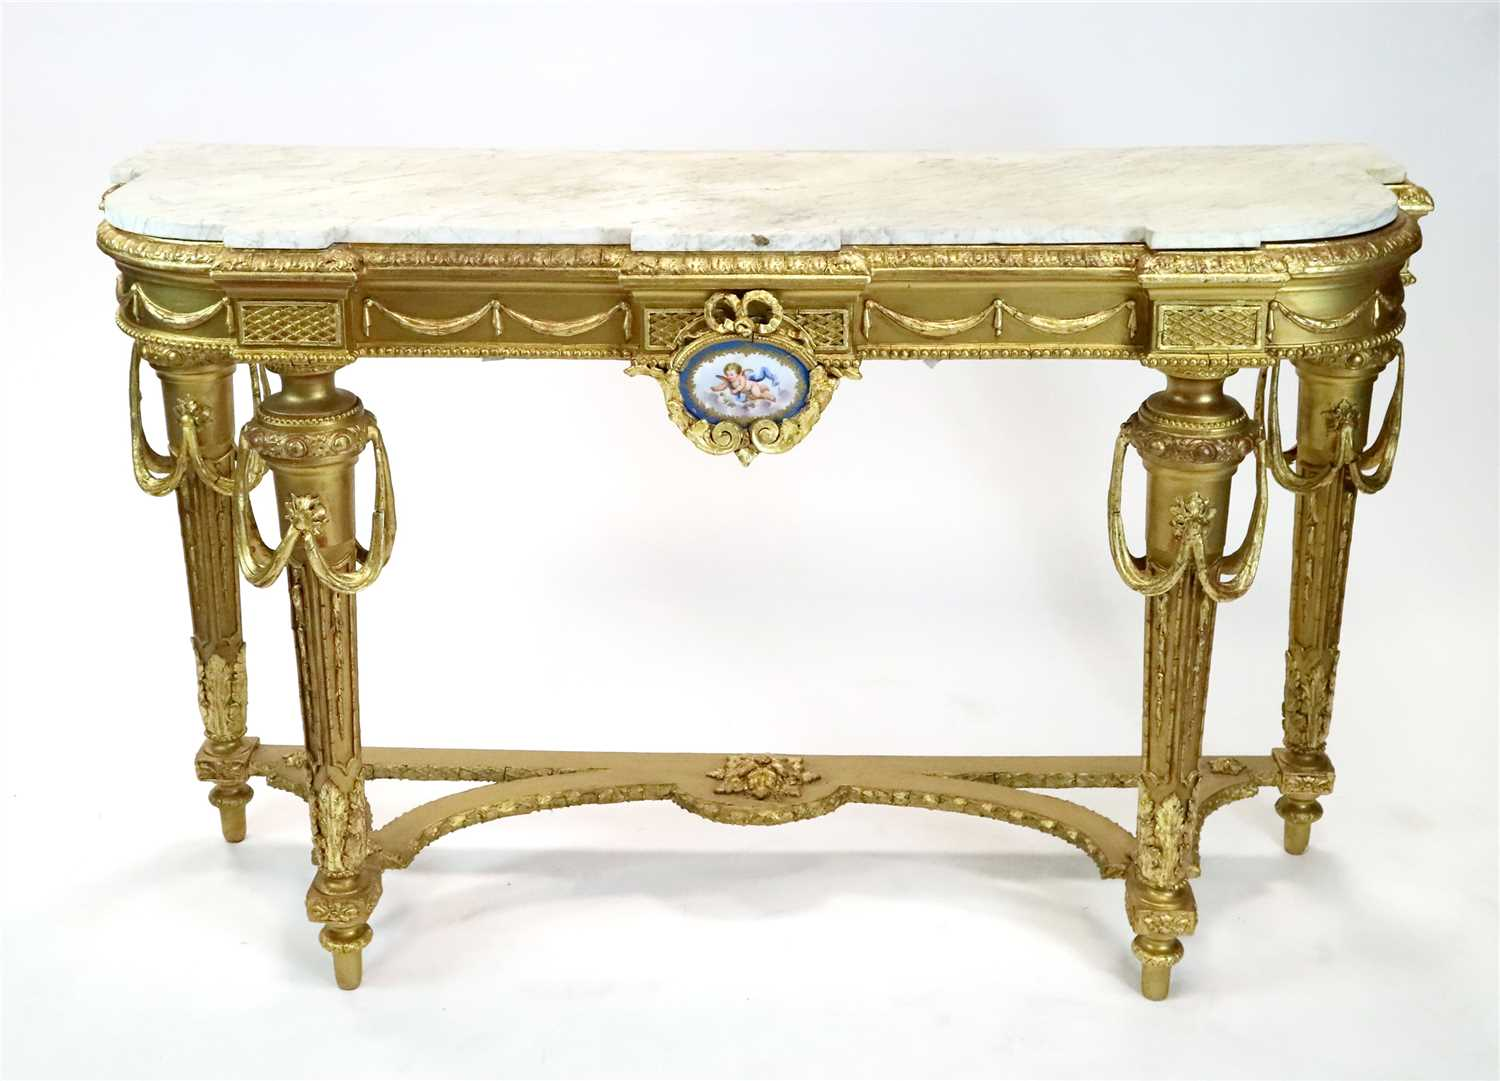 Lot 220-A decorative 19th century gilt carved wood and moulded plaster marble-topped console table